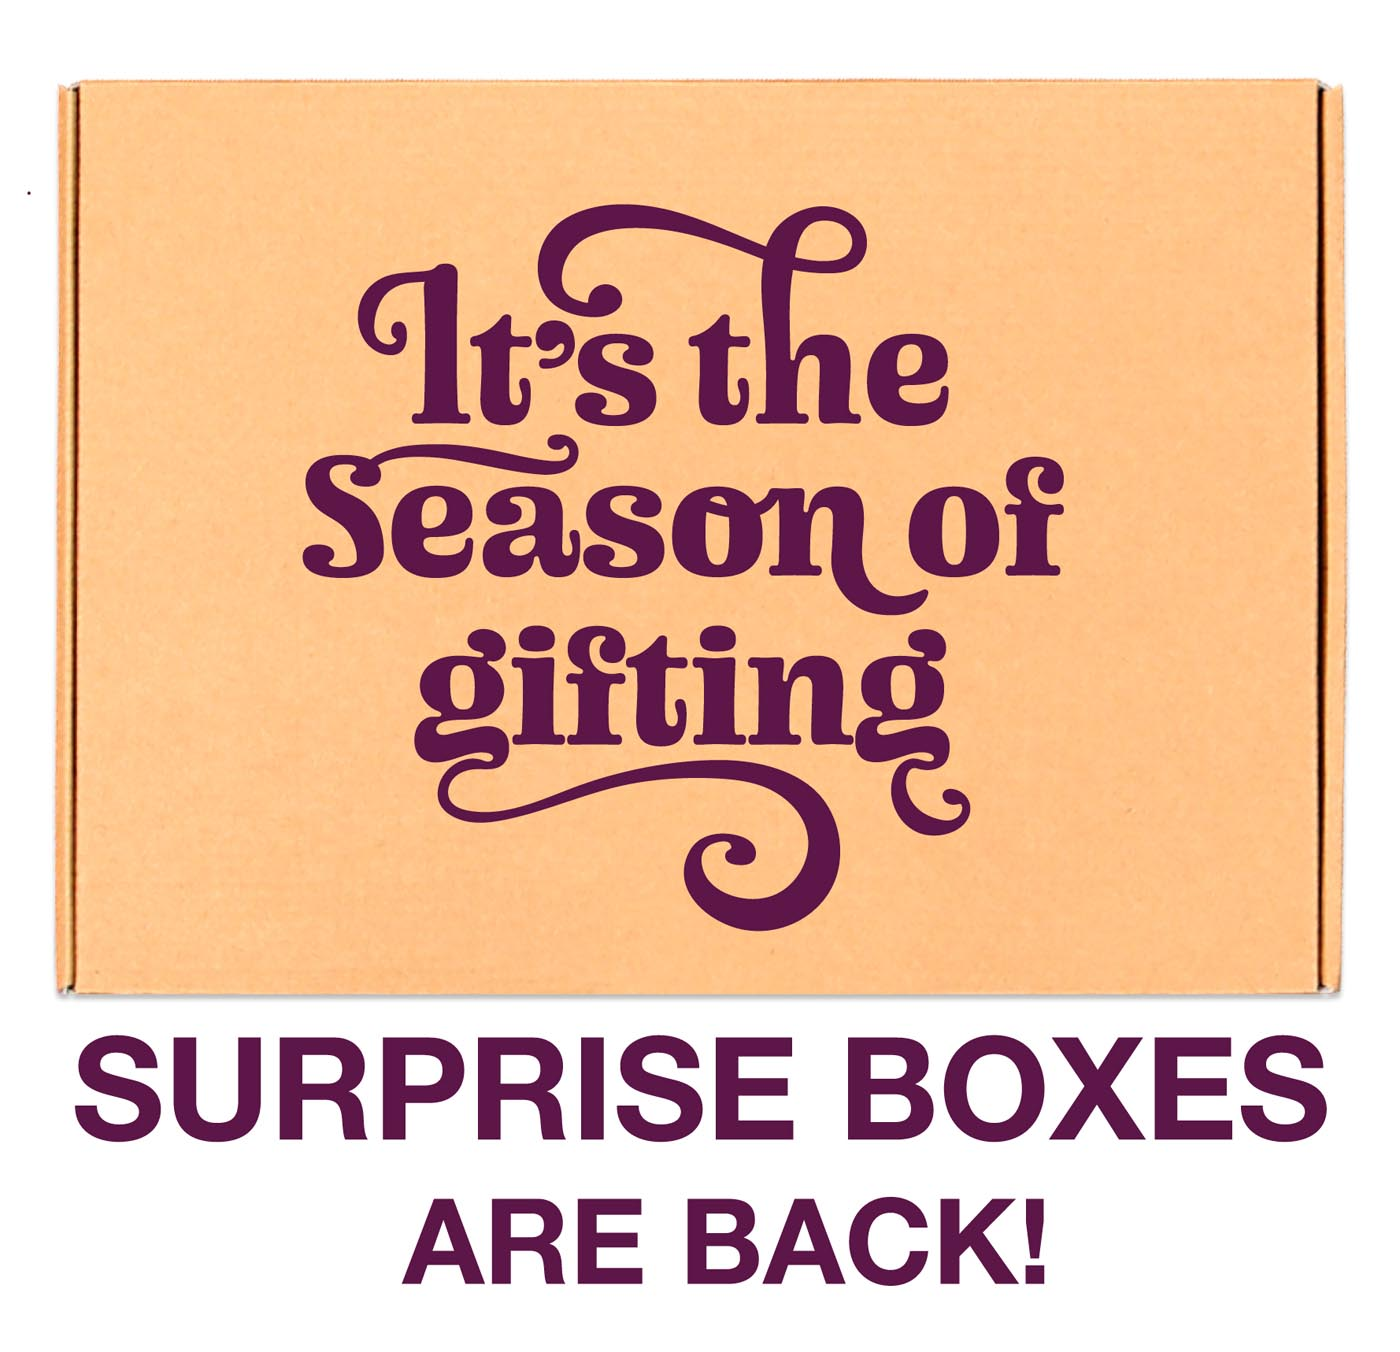 Surprise boxes are back